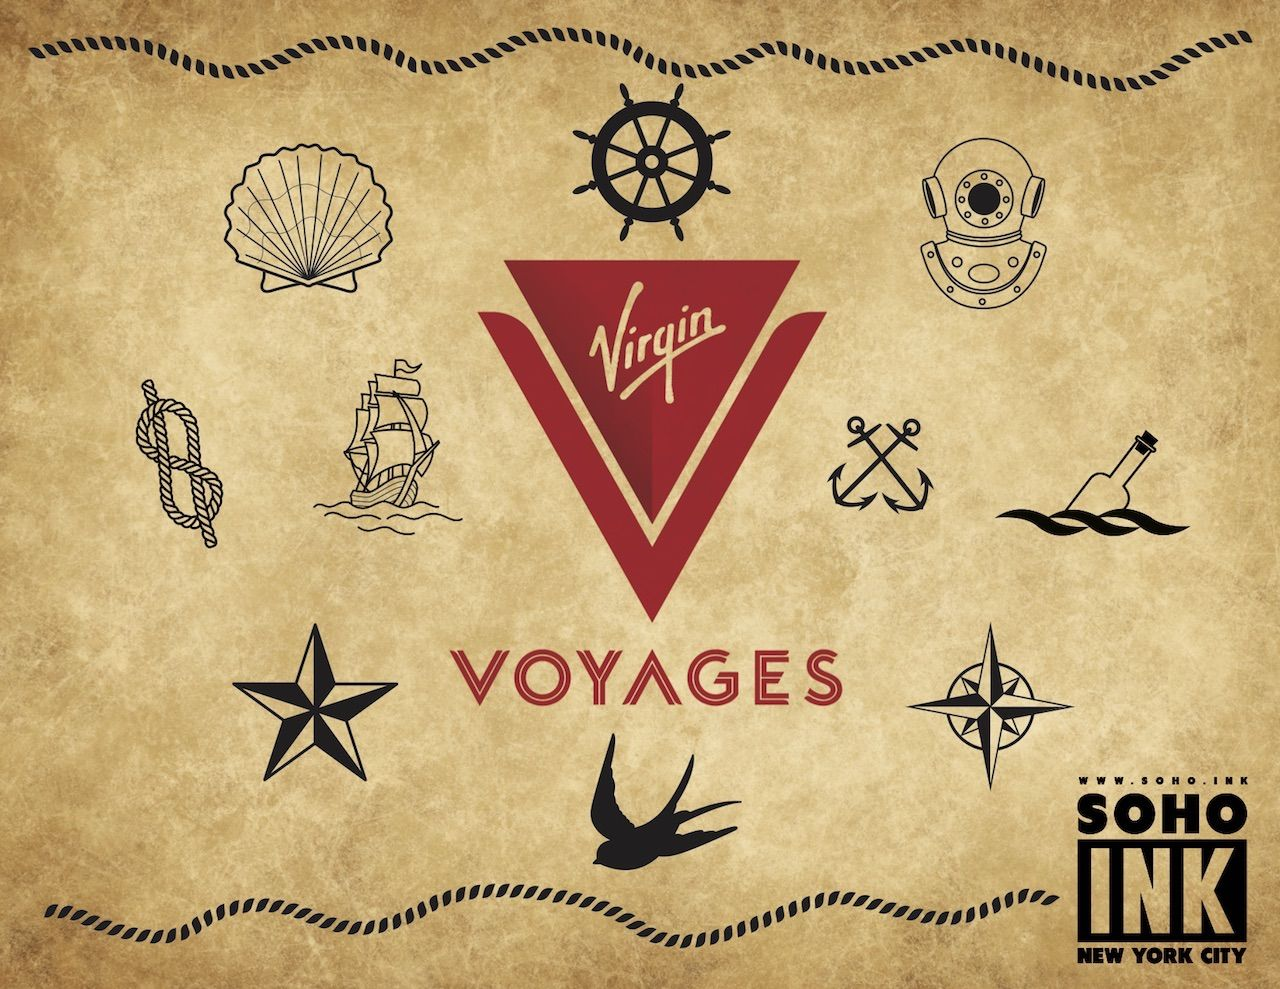 Virgin Voyages tattoo Soho Ink NYC